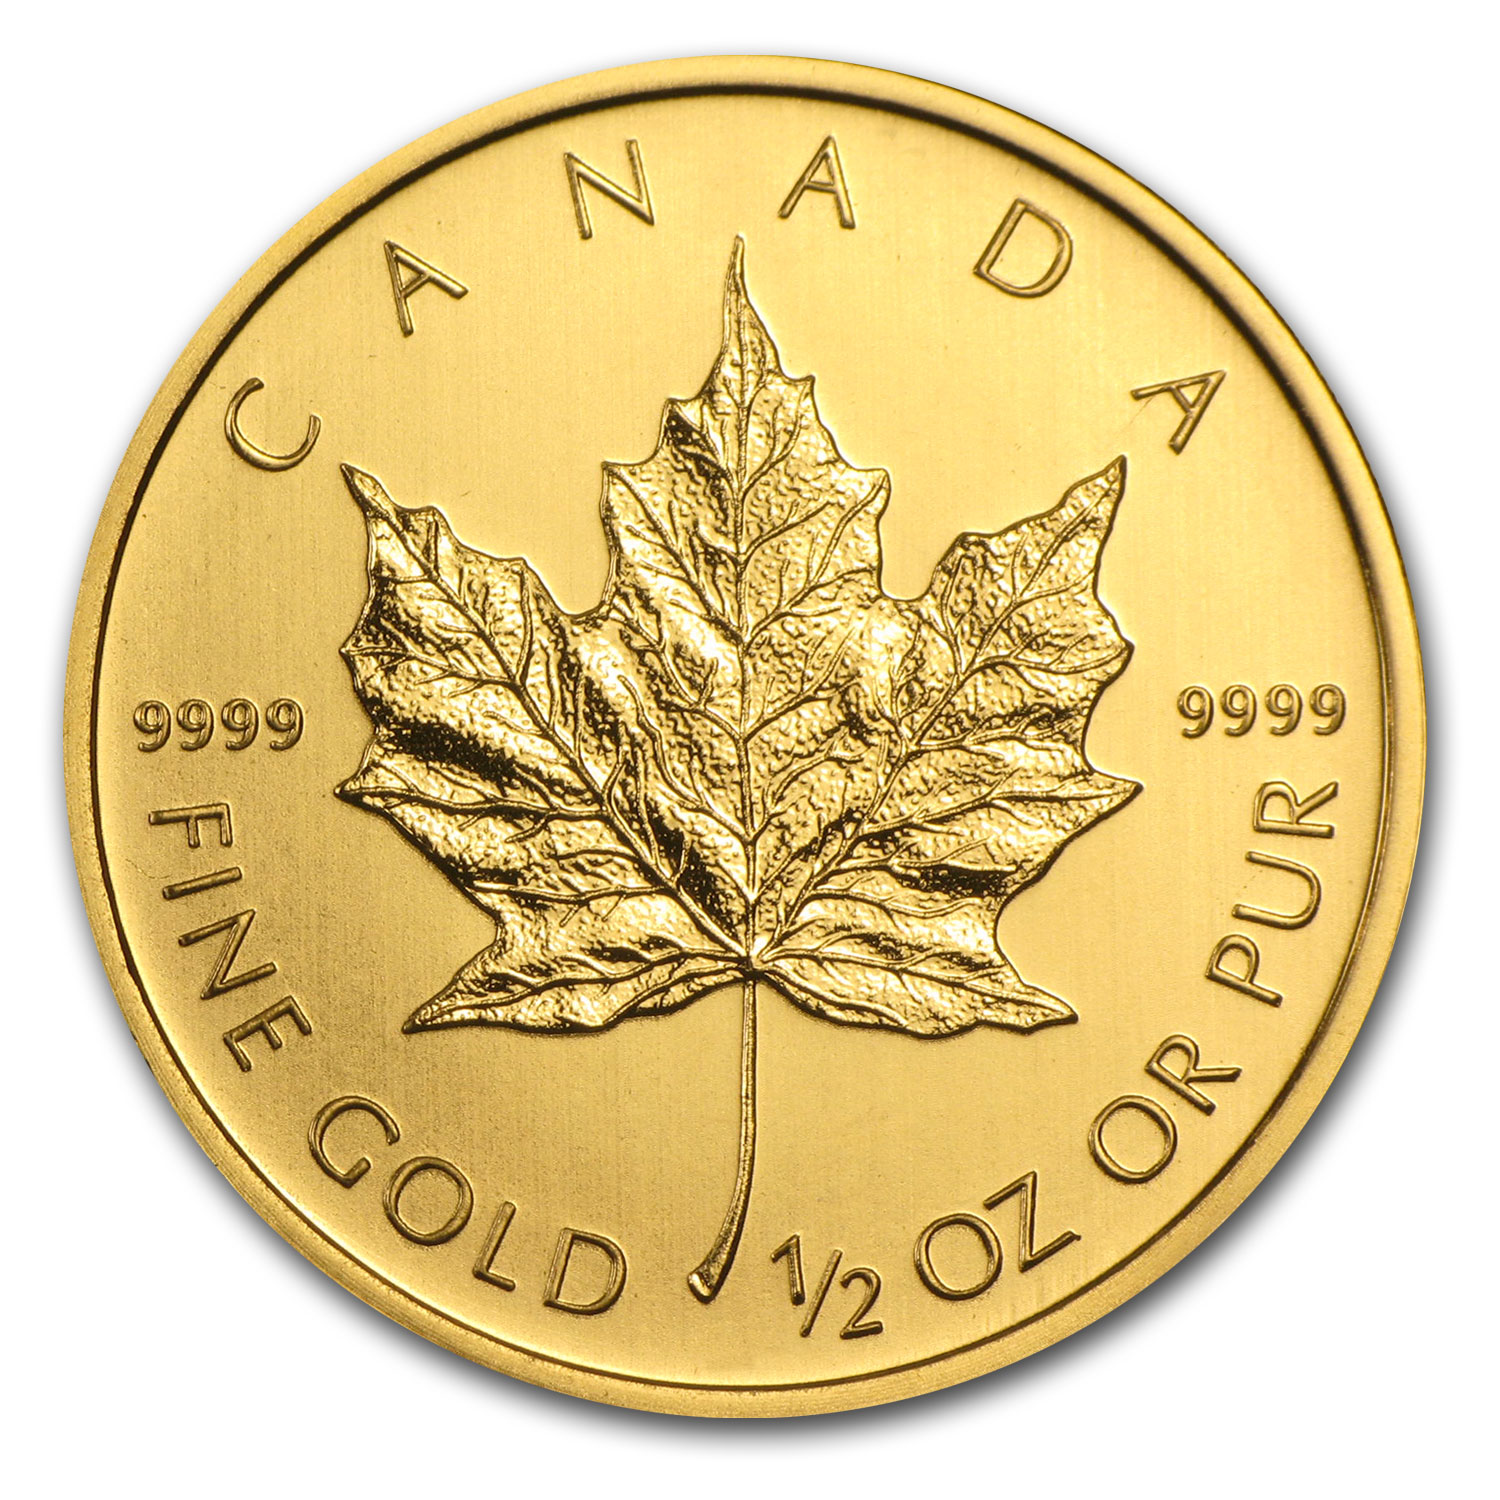 2013 1/2 oz Gold Canadian Maple Leaf BU